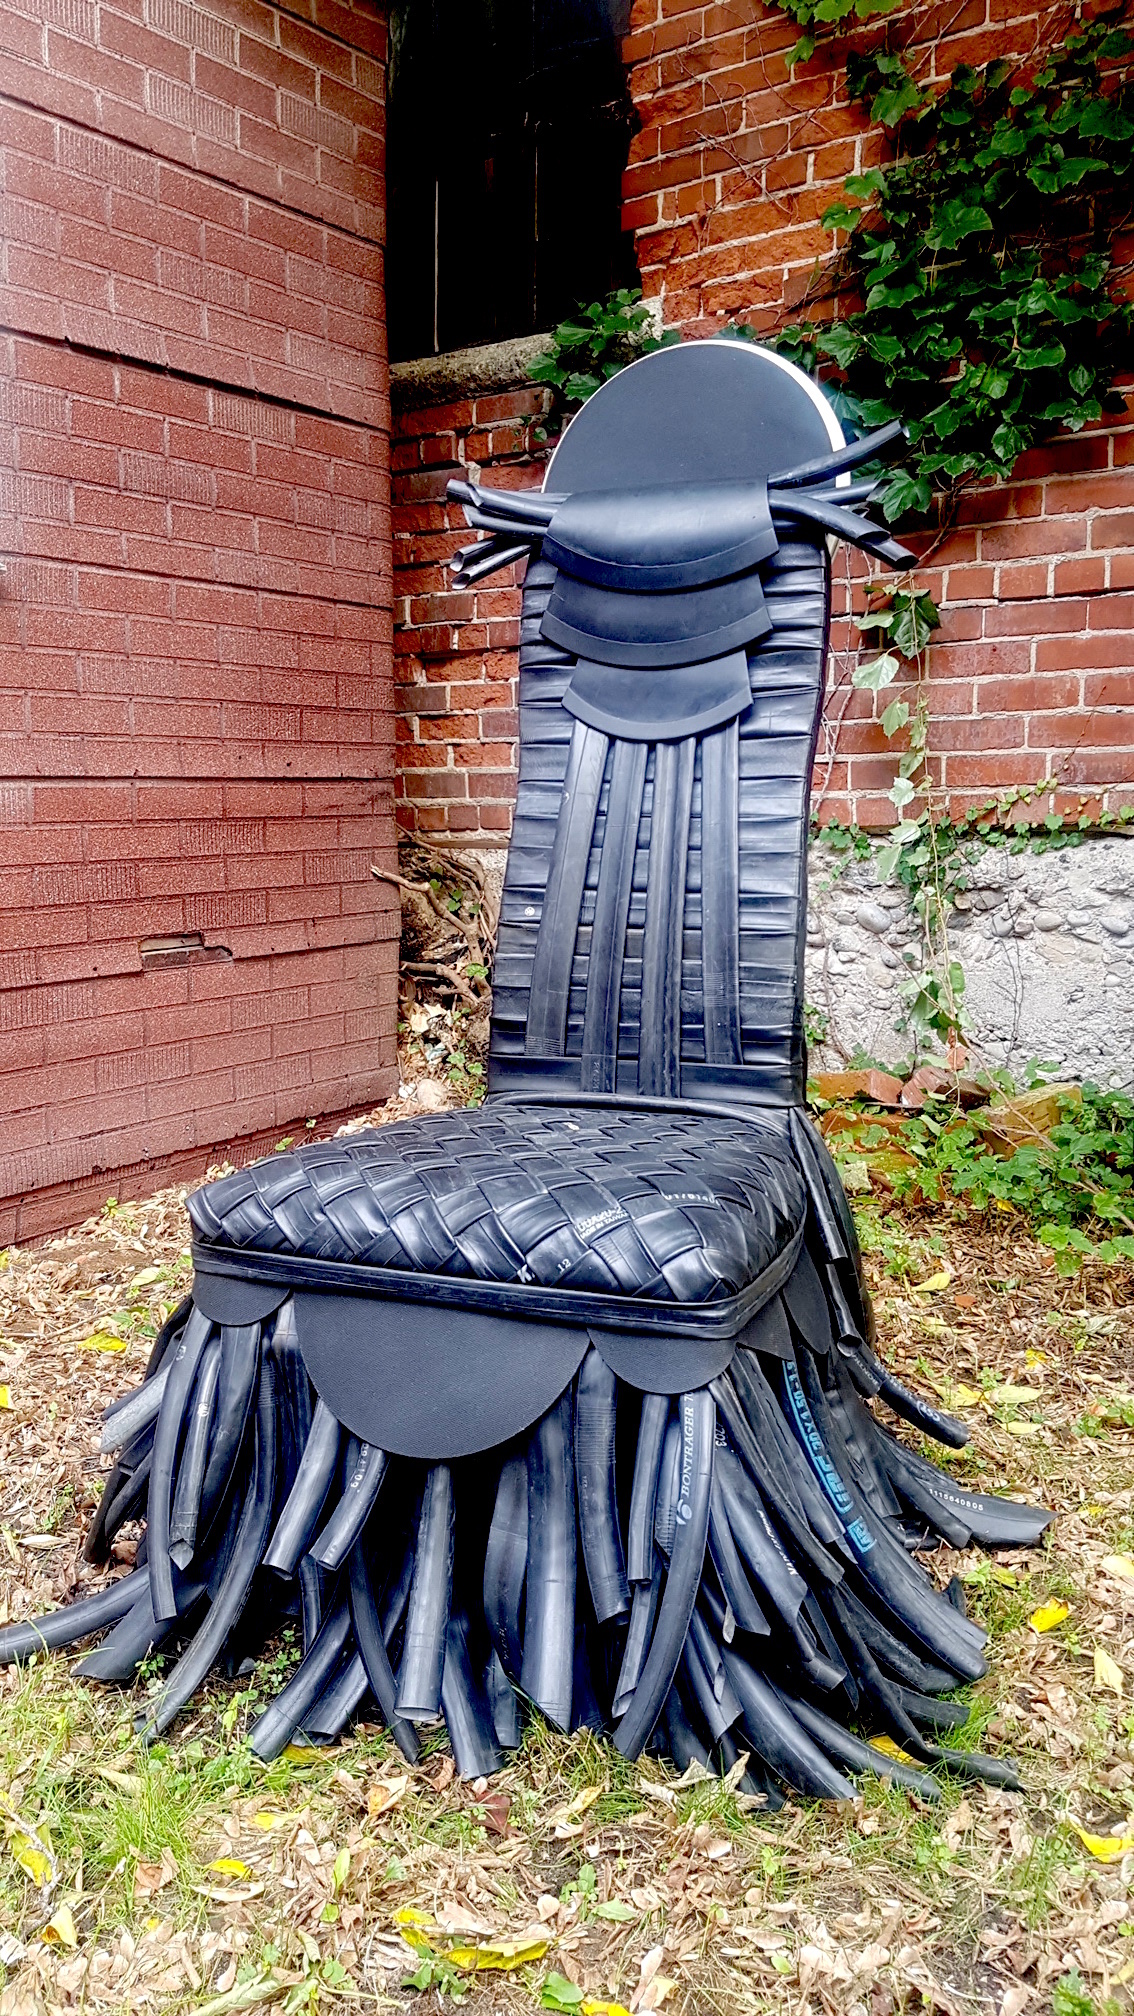 01_What Will Survive Of Us Is Love_2018_chair, bicycle tubes, and rubber drum mats 101.6 x 128.27 x 68.58 cm_$2000 .JPG